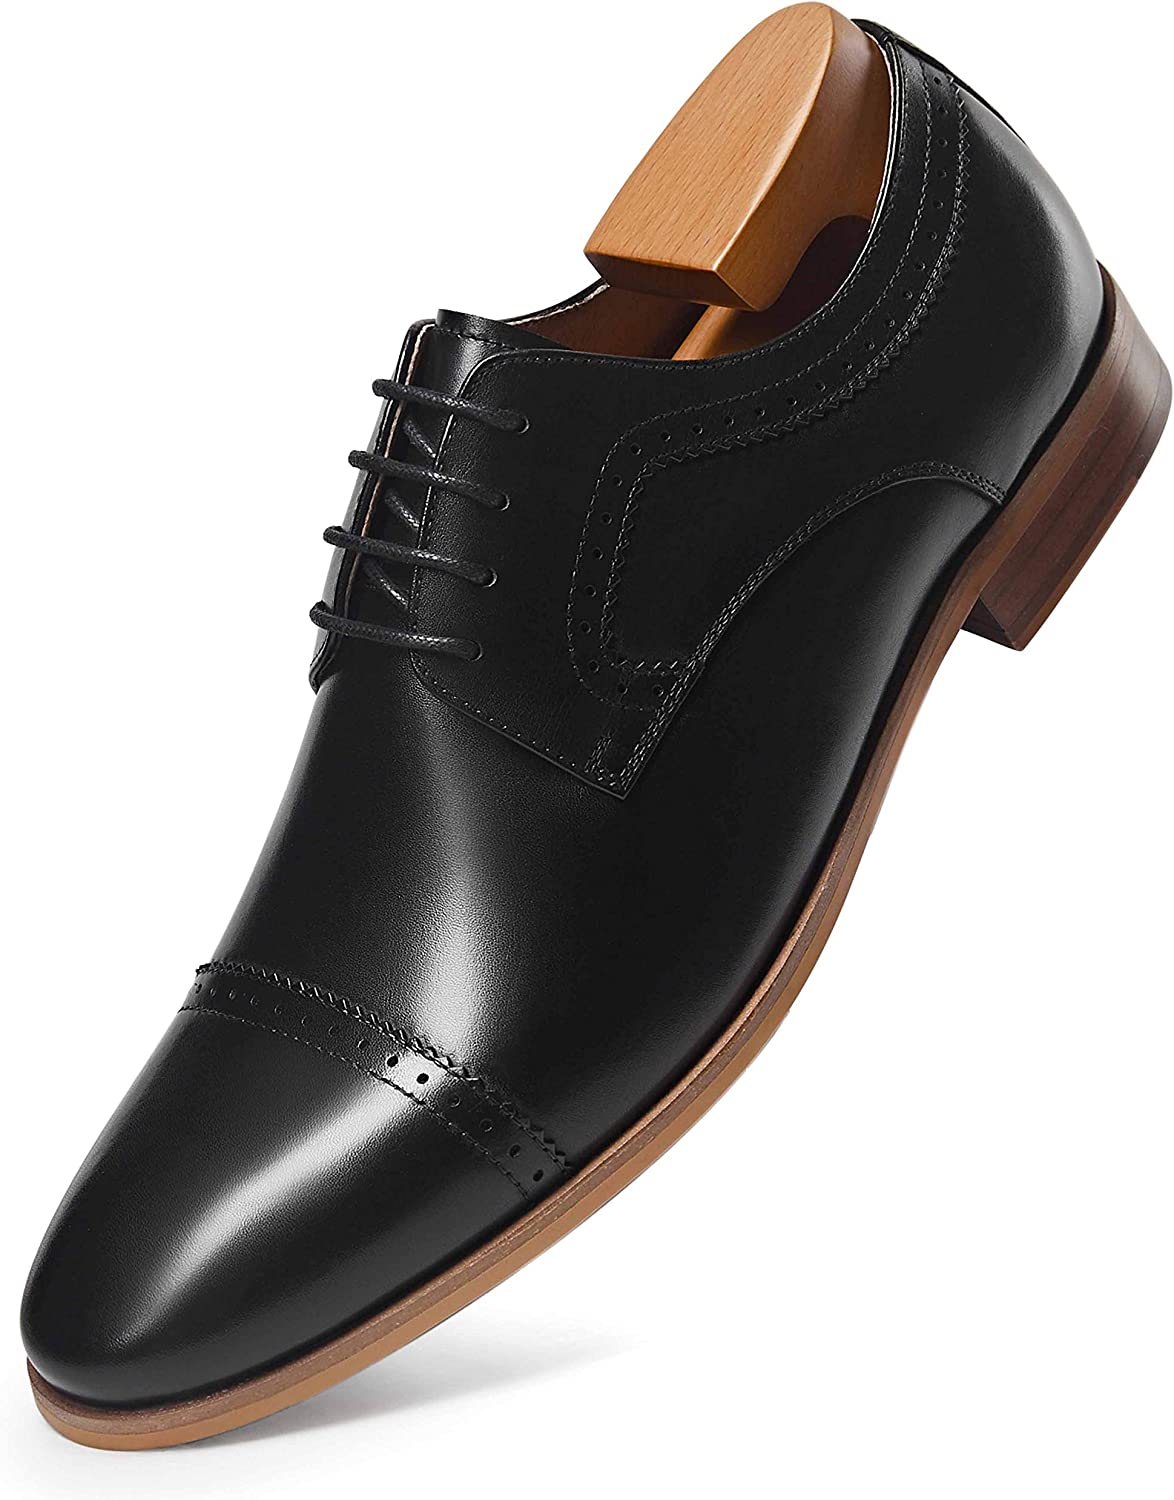 Frasoicus Men's Dress Shoes Leather Classic Lace Up Oxford Formal Shoes for Men